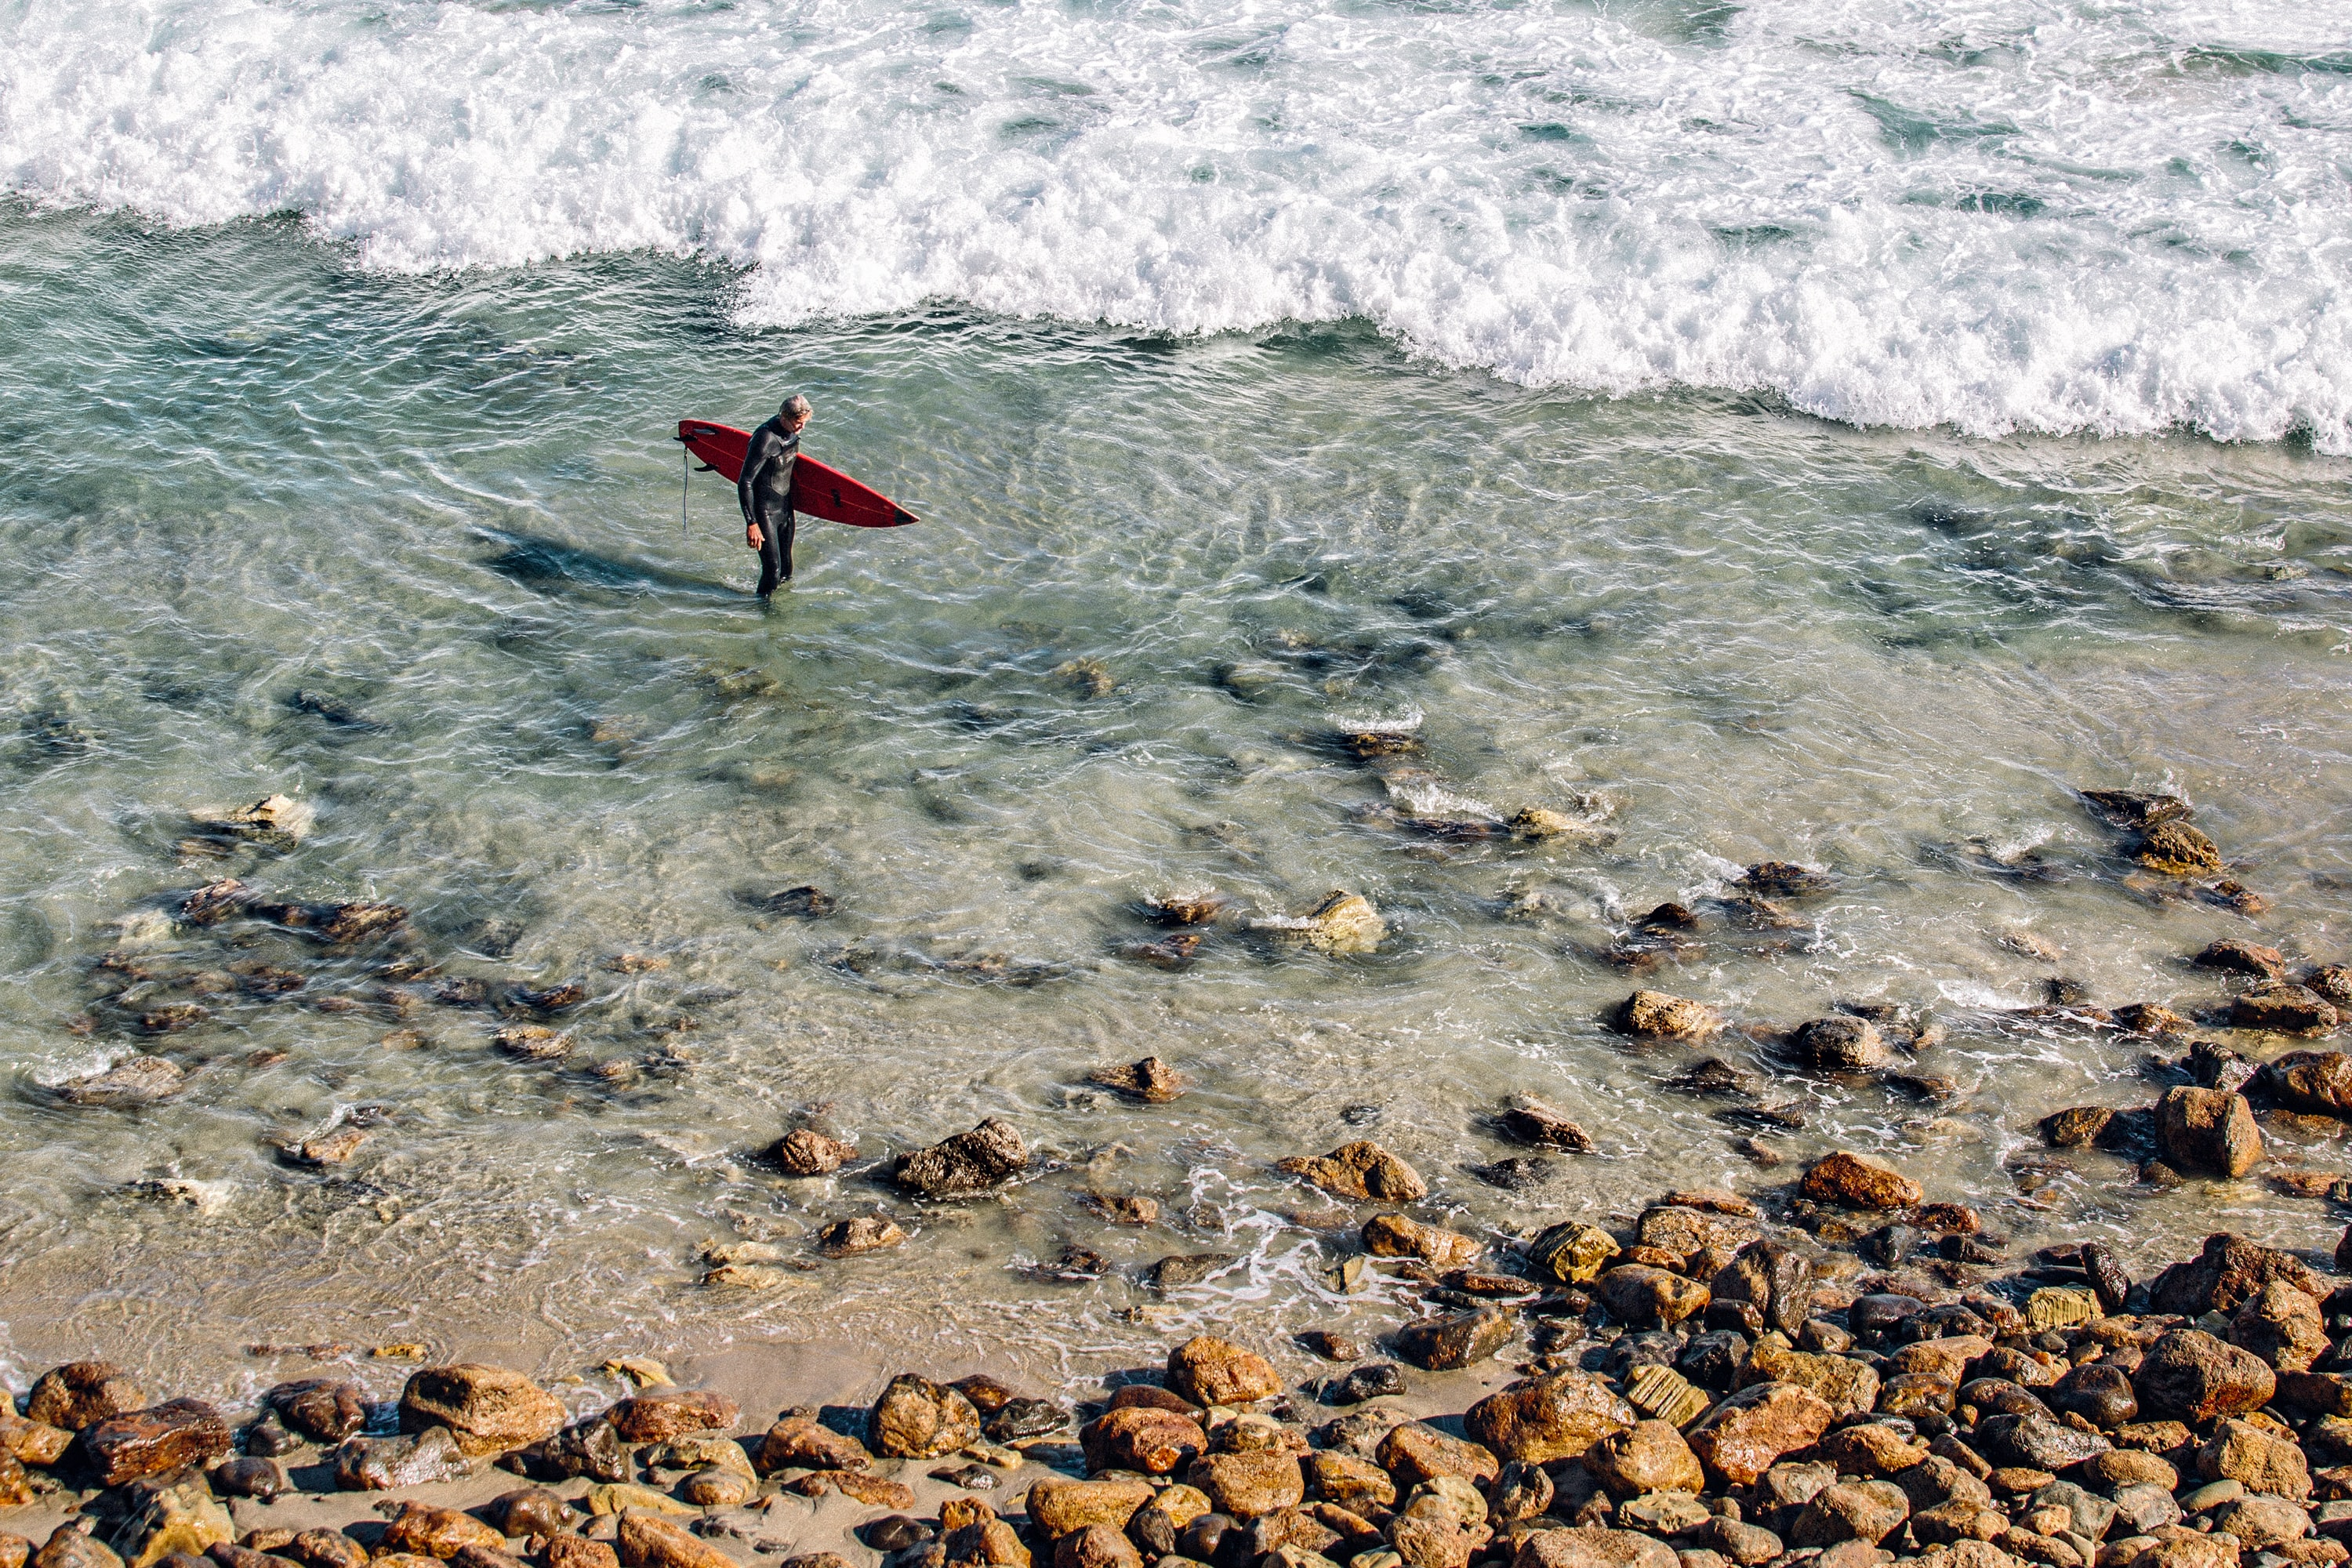 Surfer with a surfboard standing in the shallow ocean water at Point Dume State Beach